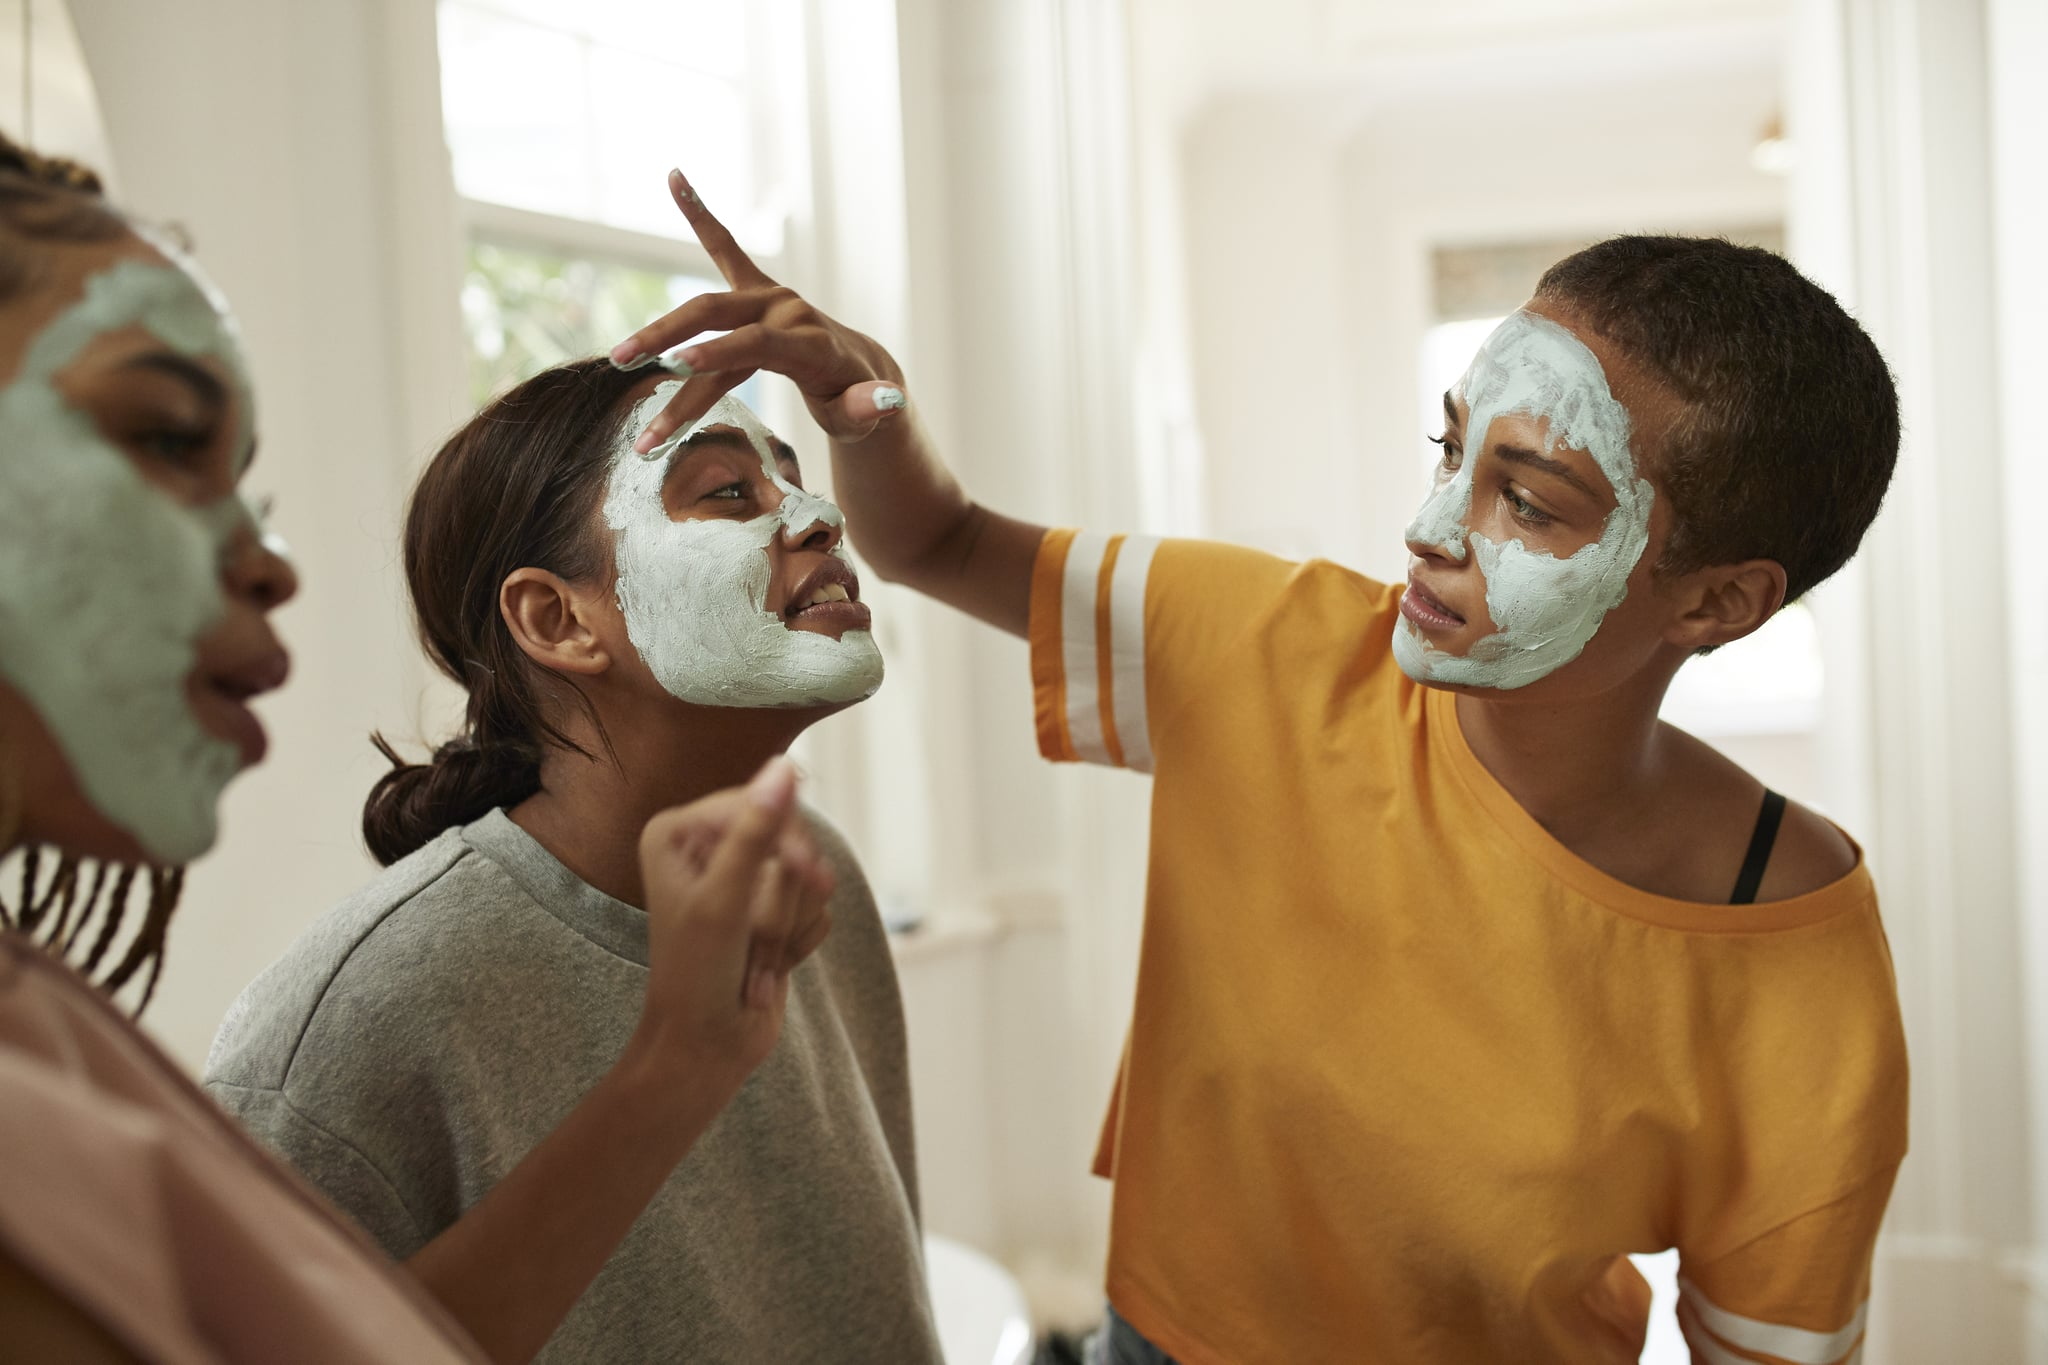 Woman looking at female friend spreading facial cream with fingers in bathroom at home